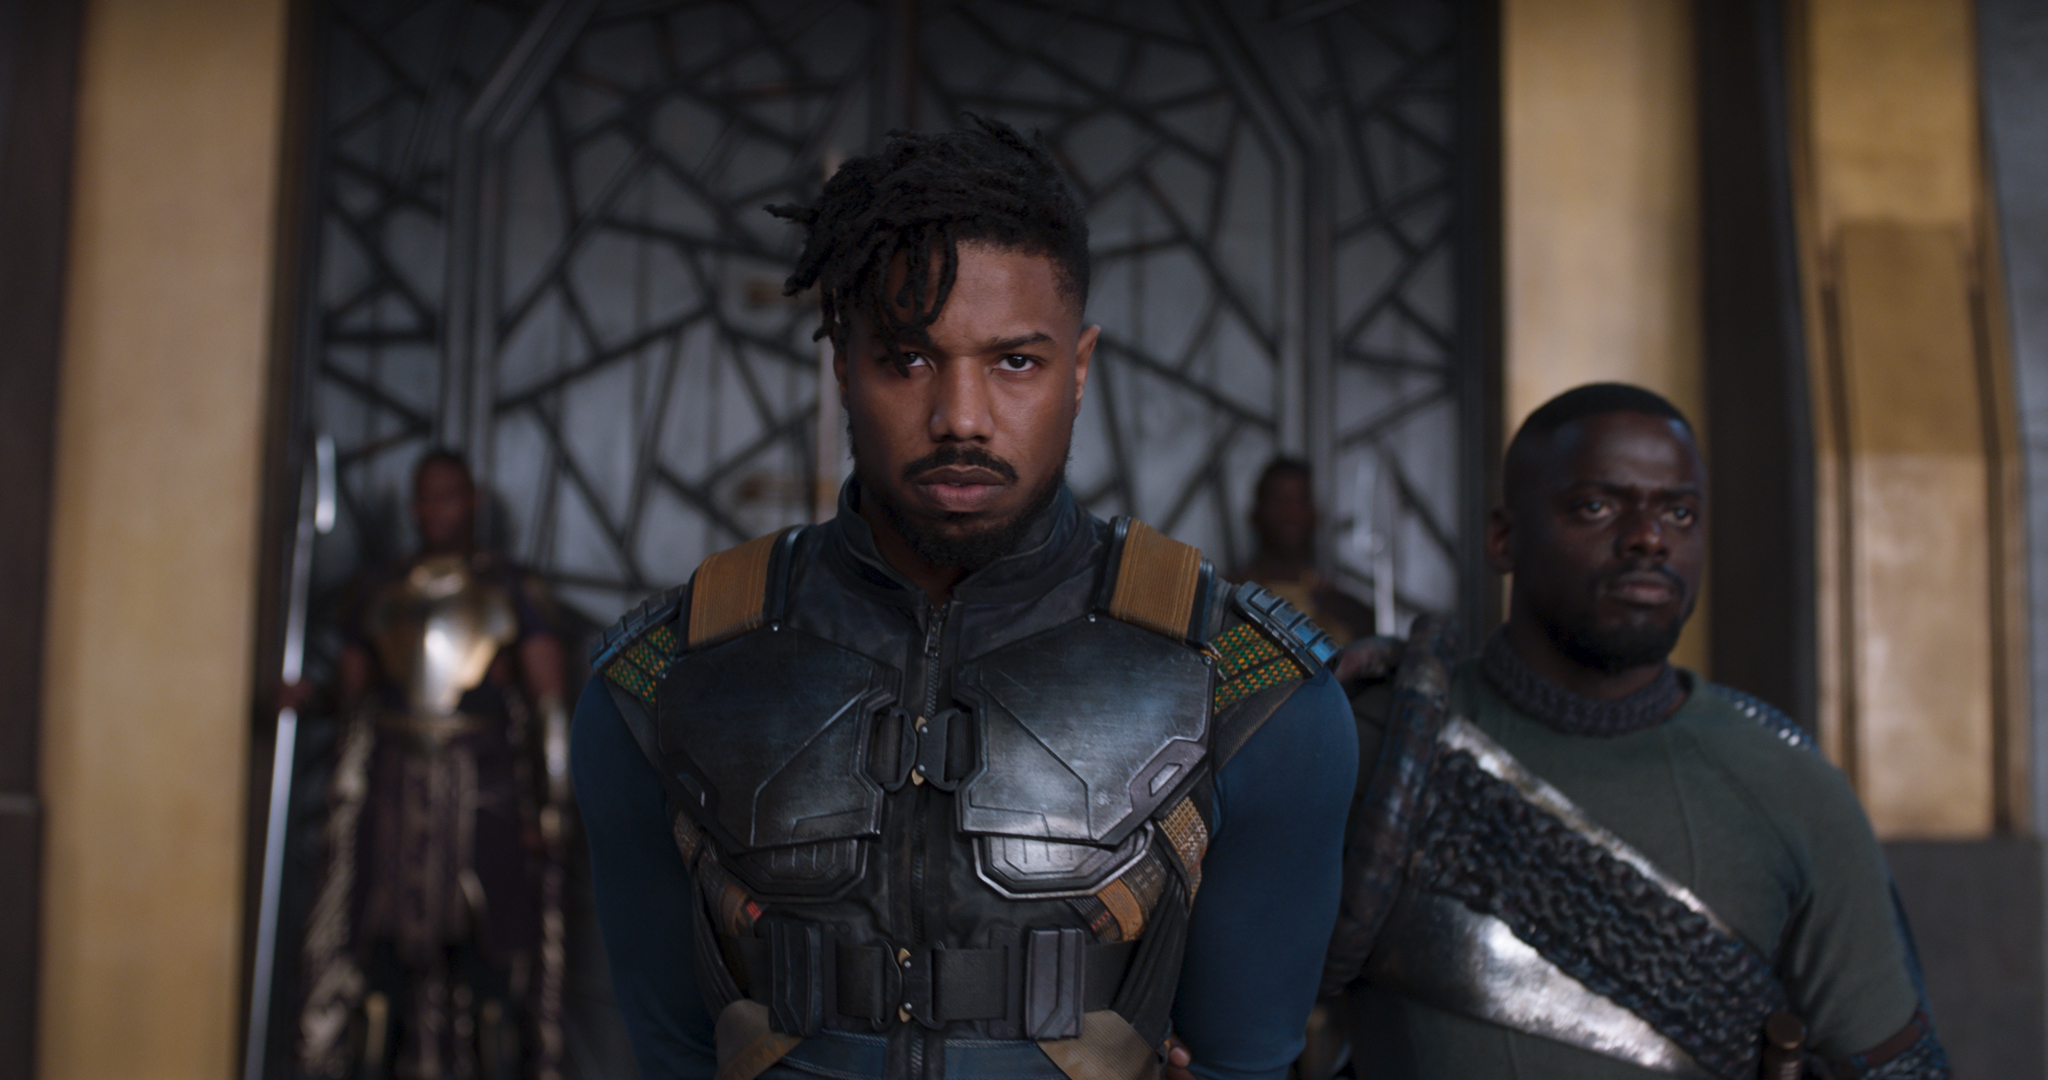 'Black Panther' Director Ryan Coogler Pens Heartfelt Letter After Landmark Opening